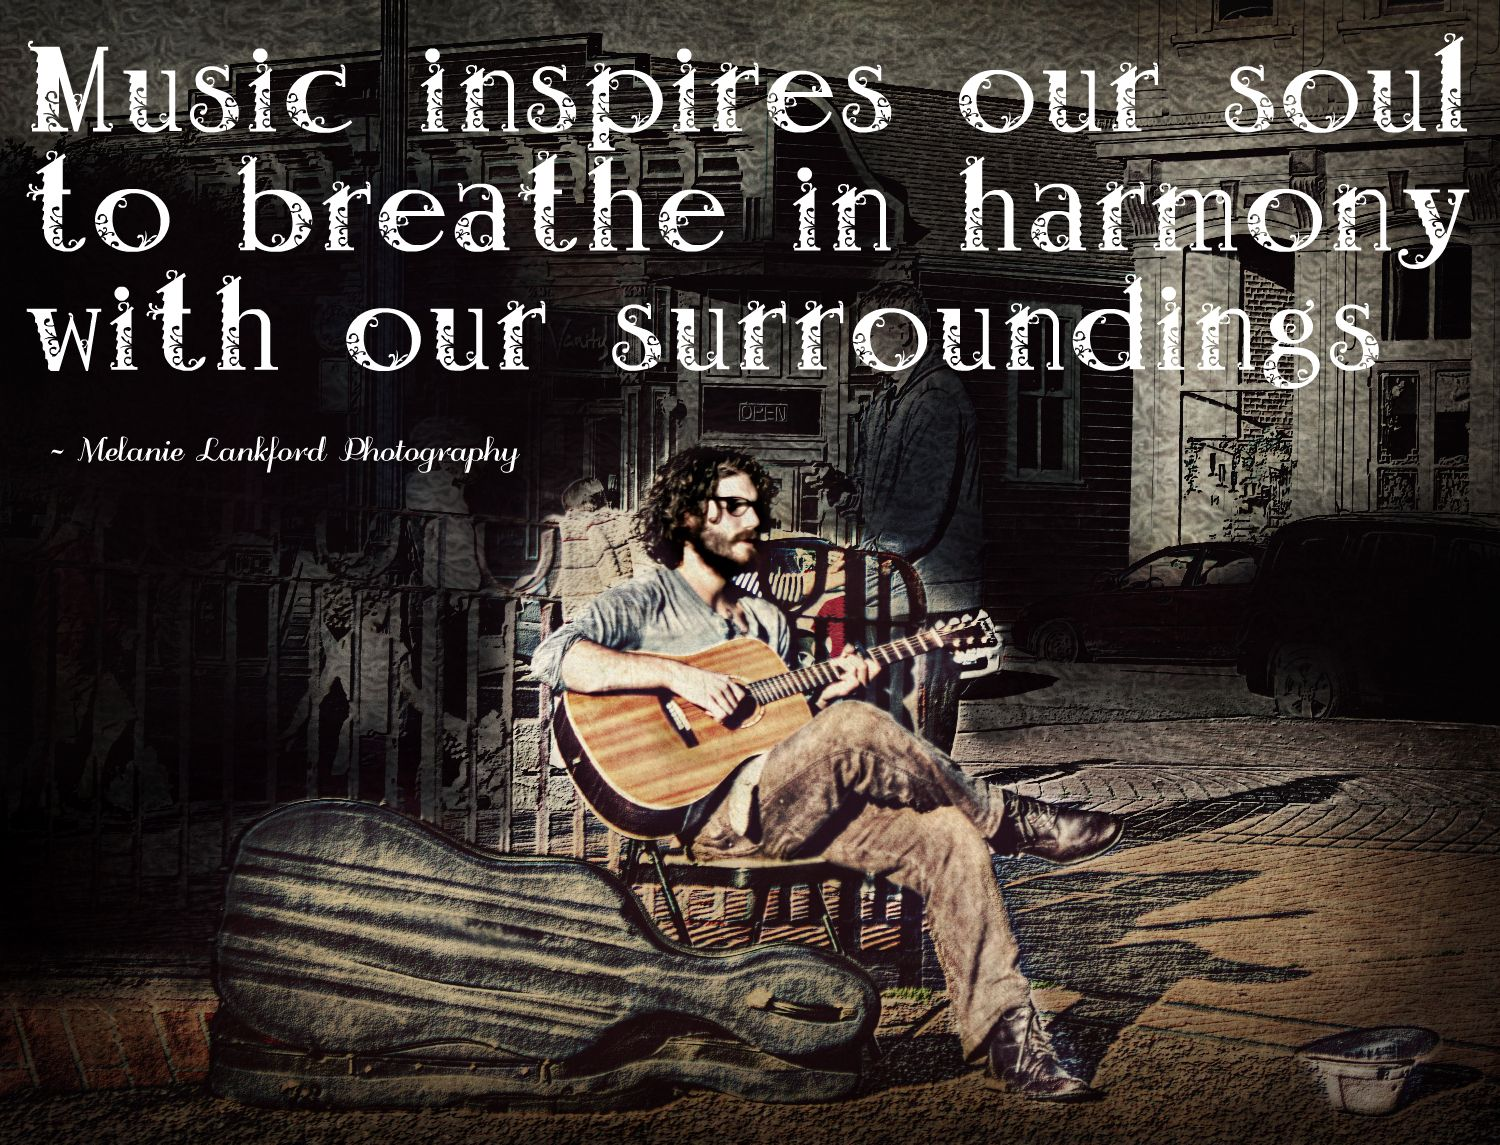 Music inspires our soul to breathe in harmony with our surroundings. ~ Melanie Lankford Photography